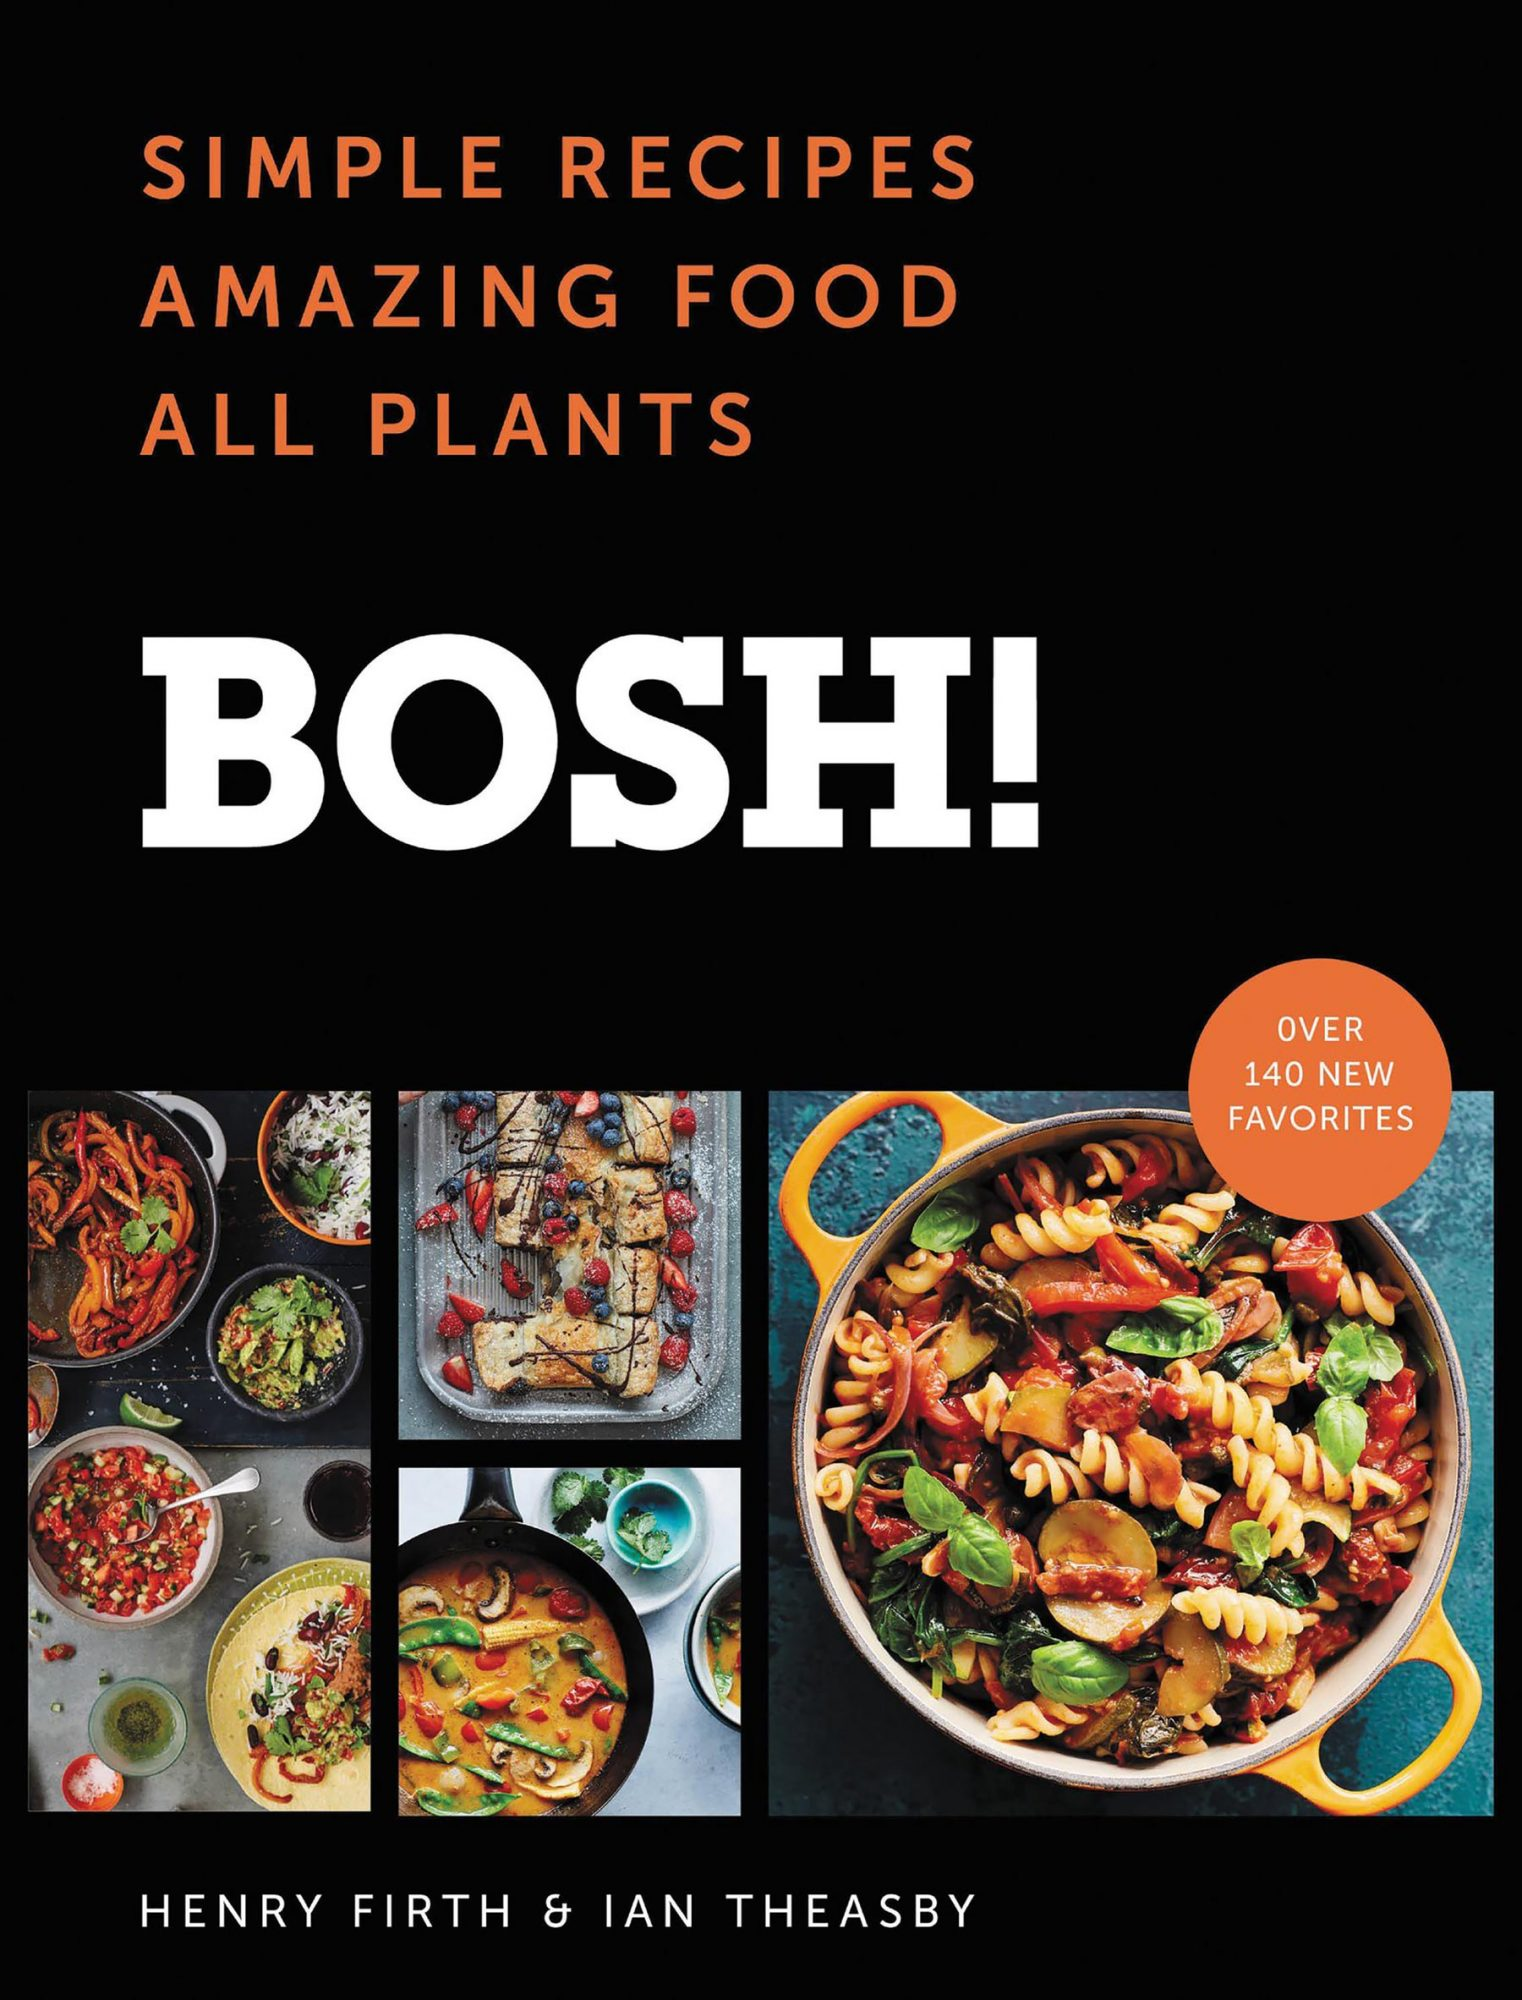 Bosh!, by Henry Firth and Ian Theasby